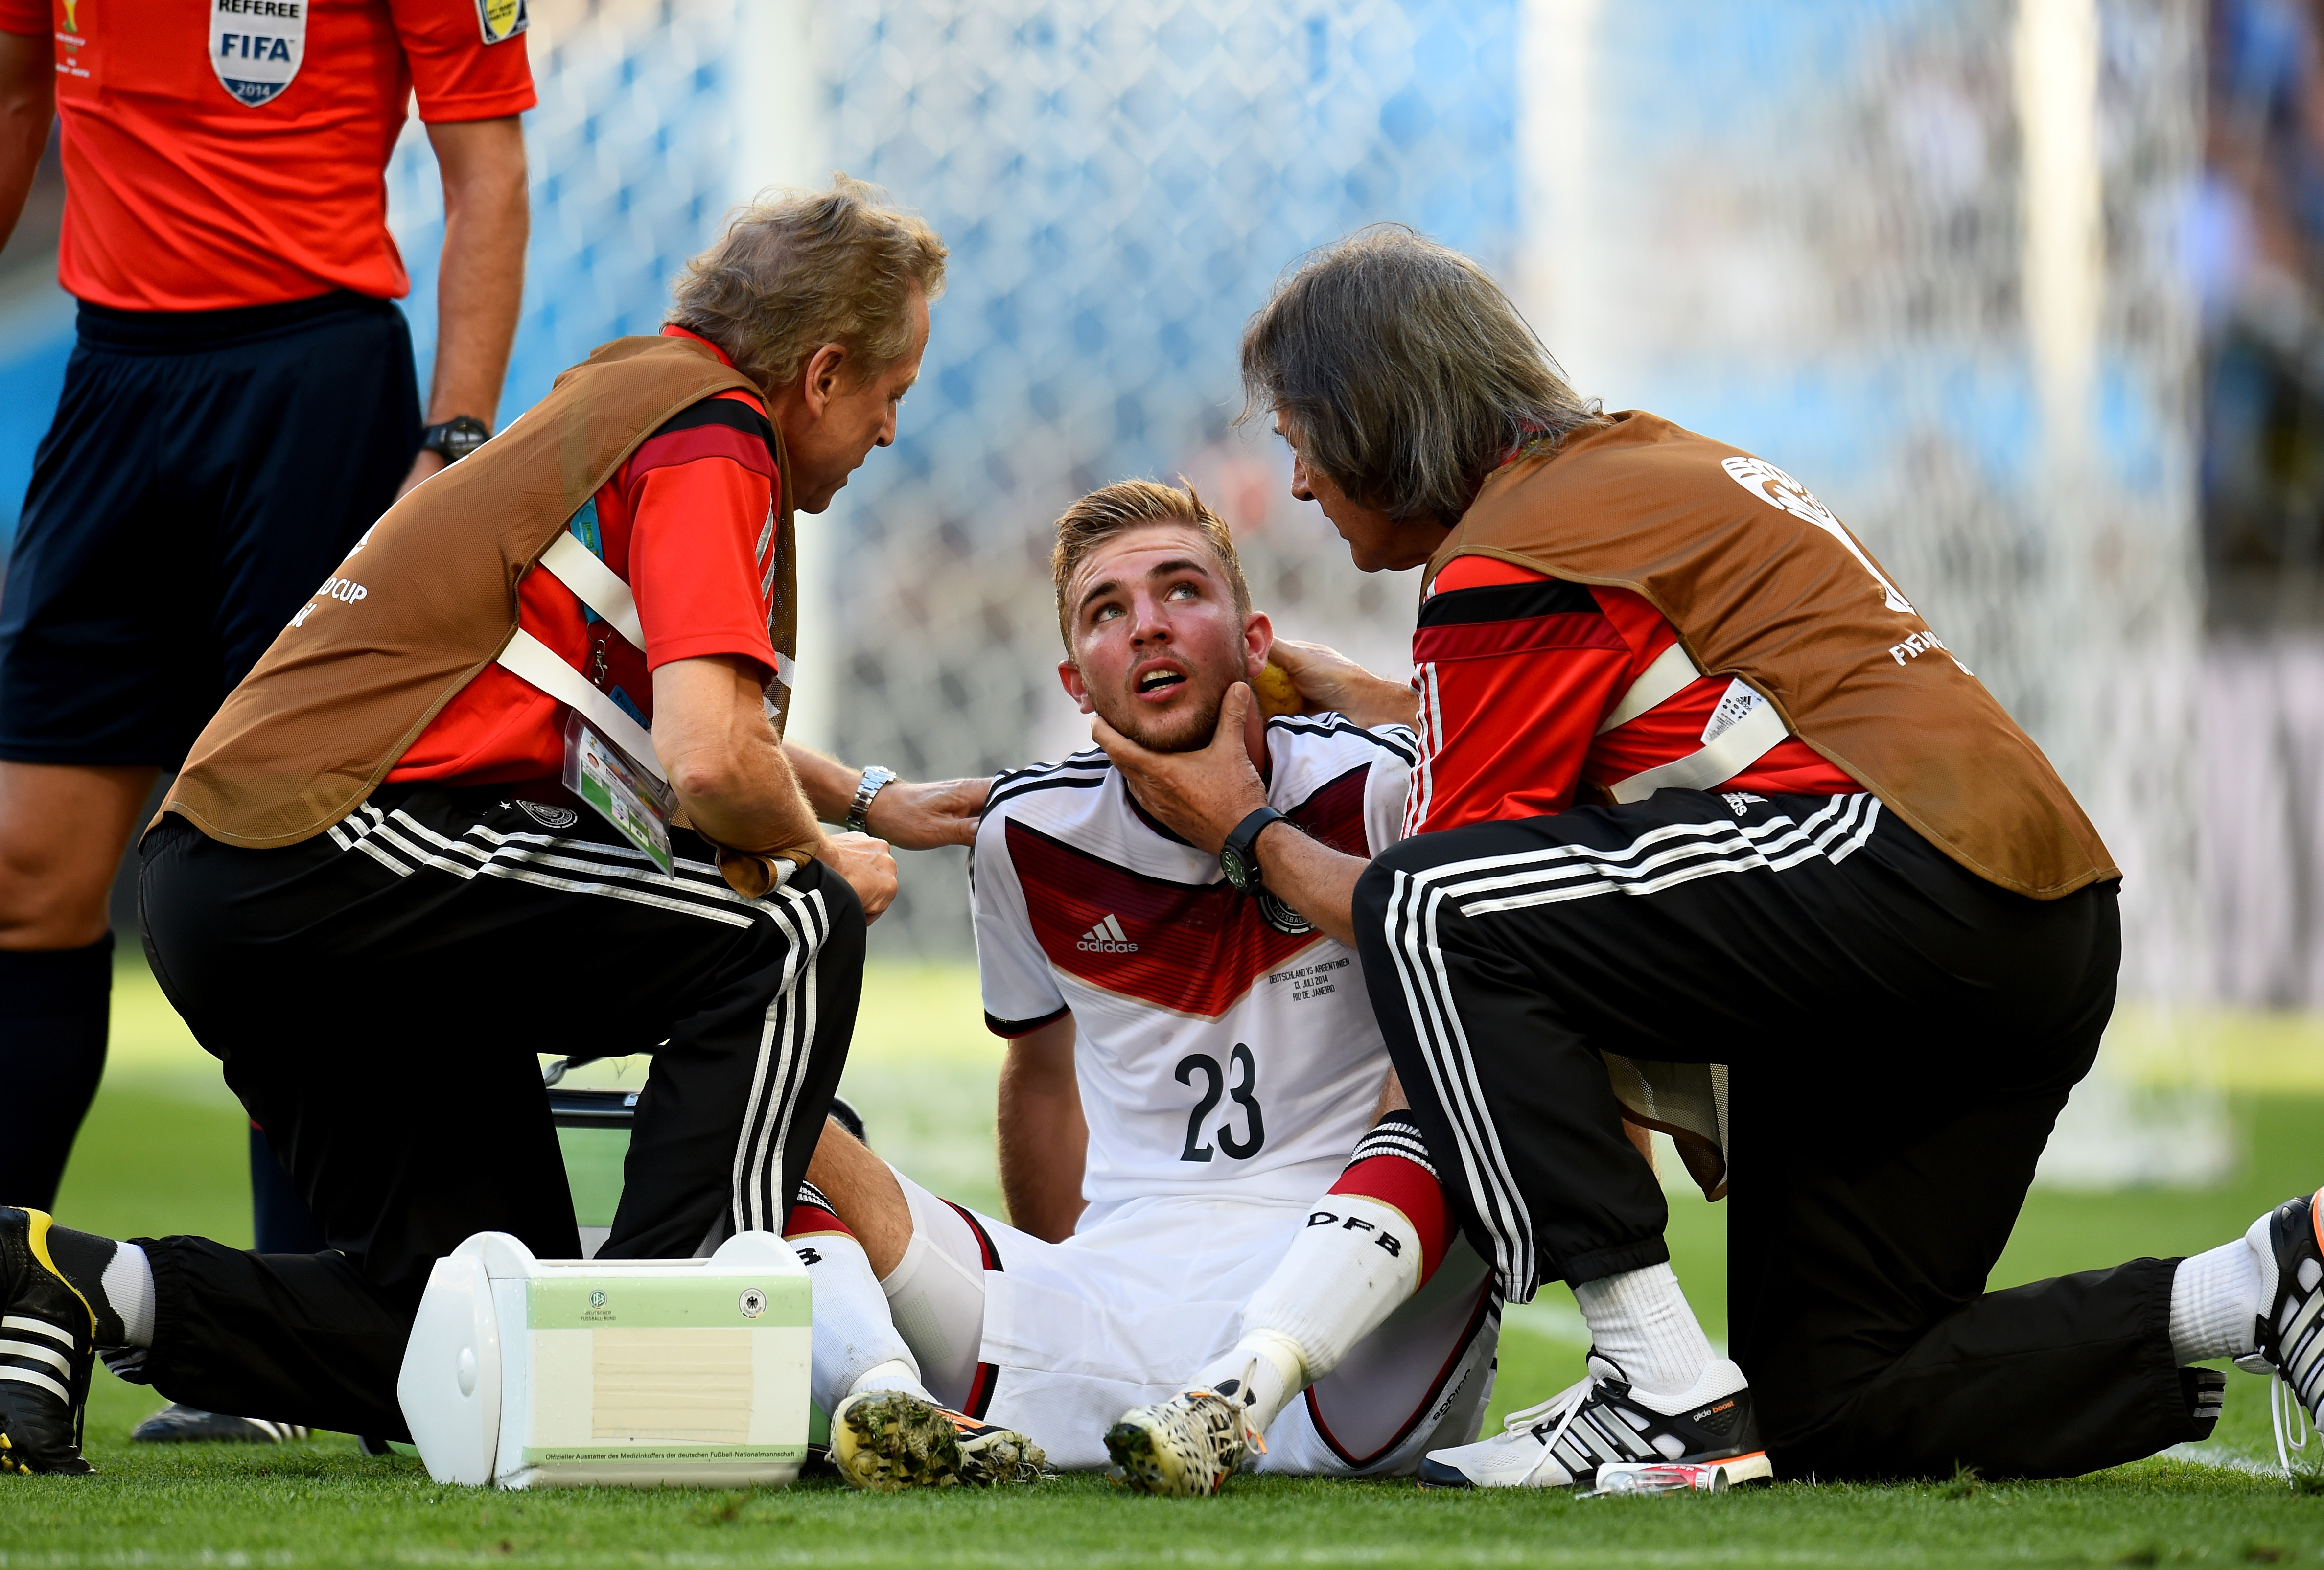 Christoph Kramer of Germany receives a medical treatment during the 2014 FIFA World Cup Brazil Final match between Germany and Argentina on July 13, 2014 in Rio de Janeiro.